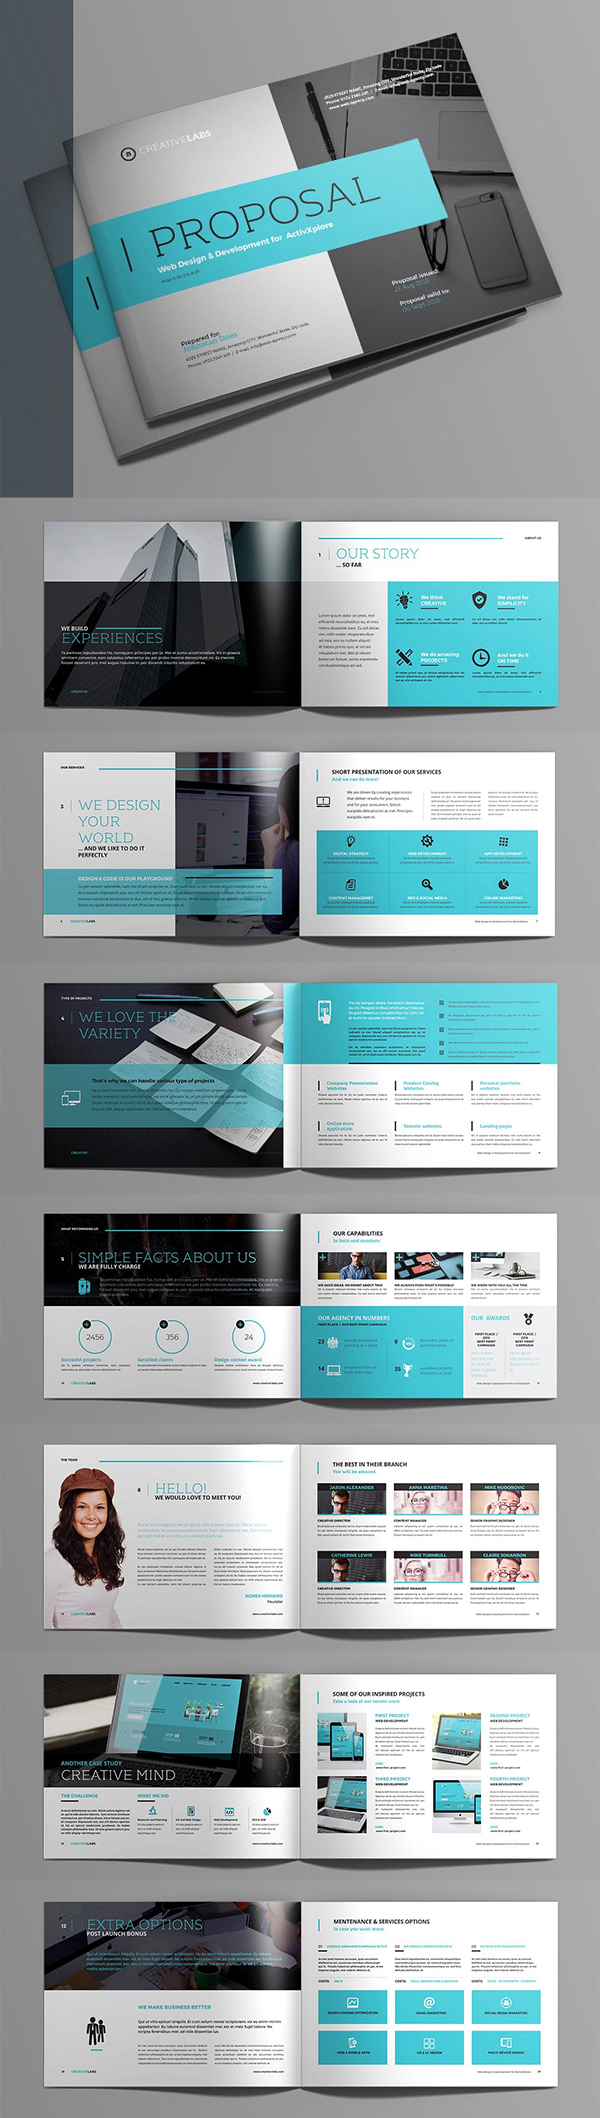 Business proposal templates design graphic design junction professional business proposal templates design 11 wajeb Images